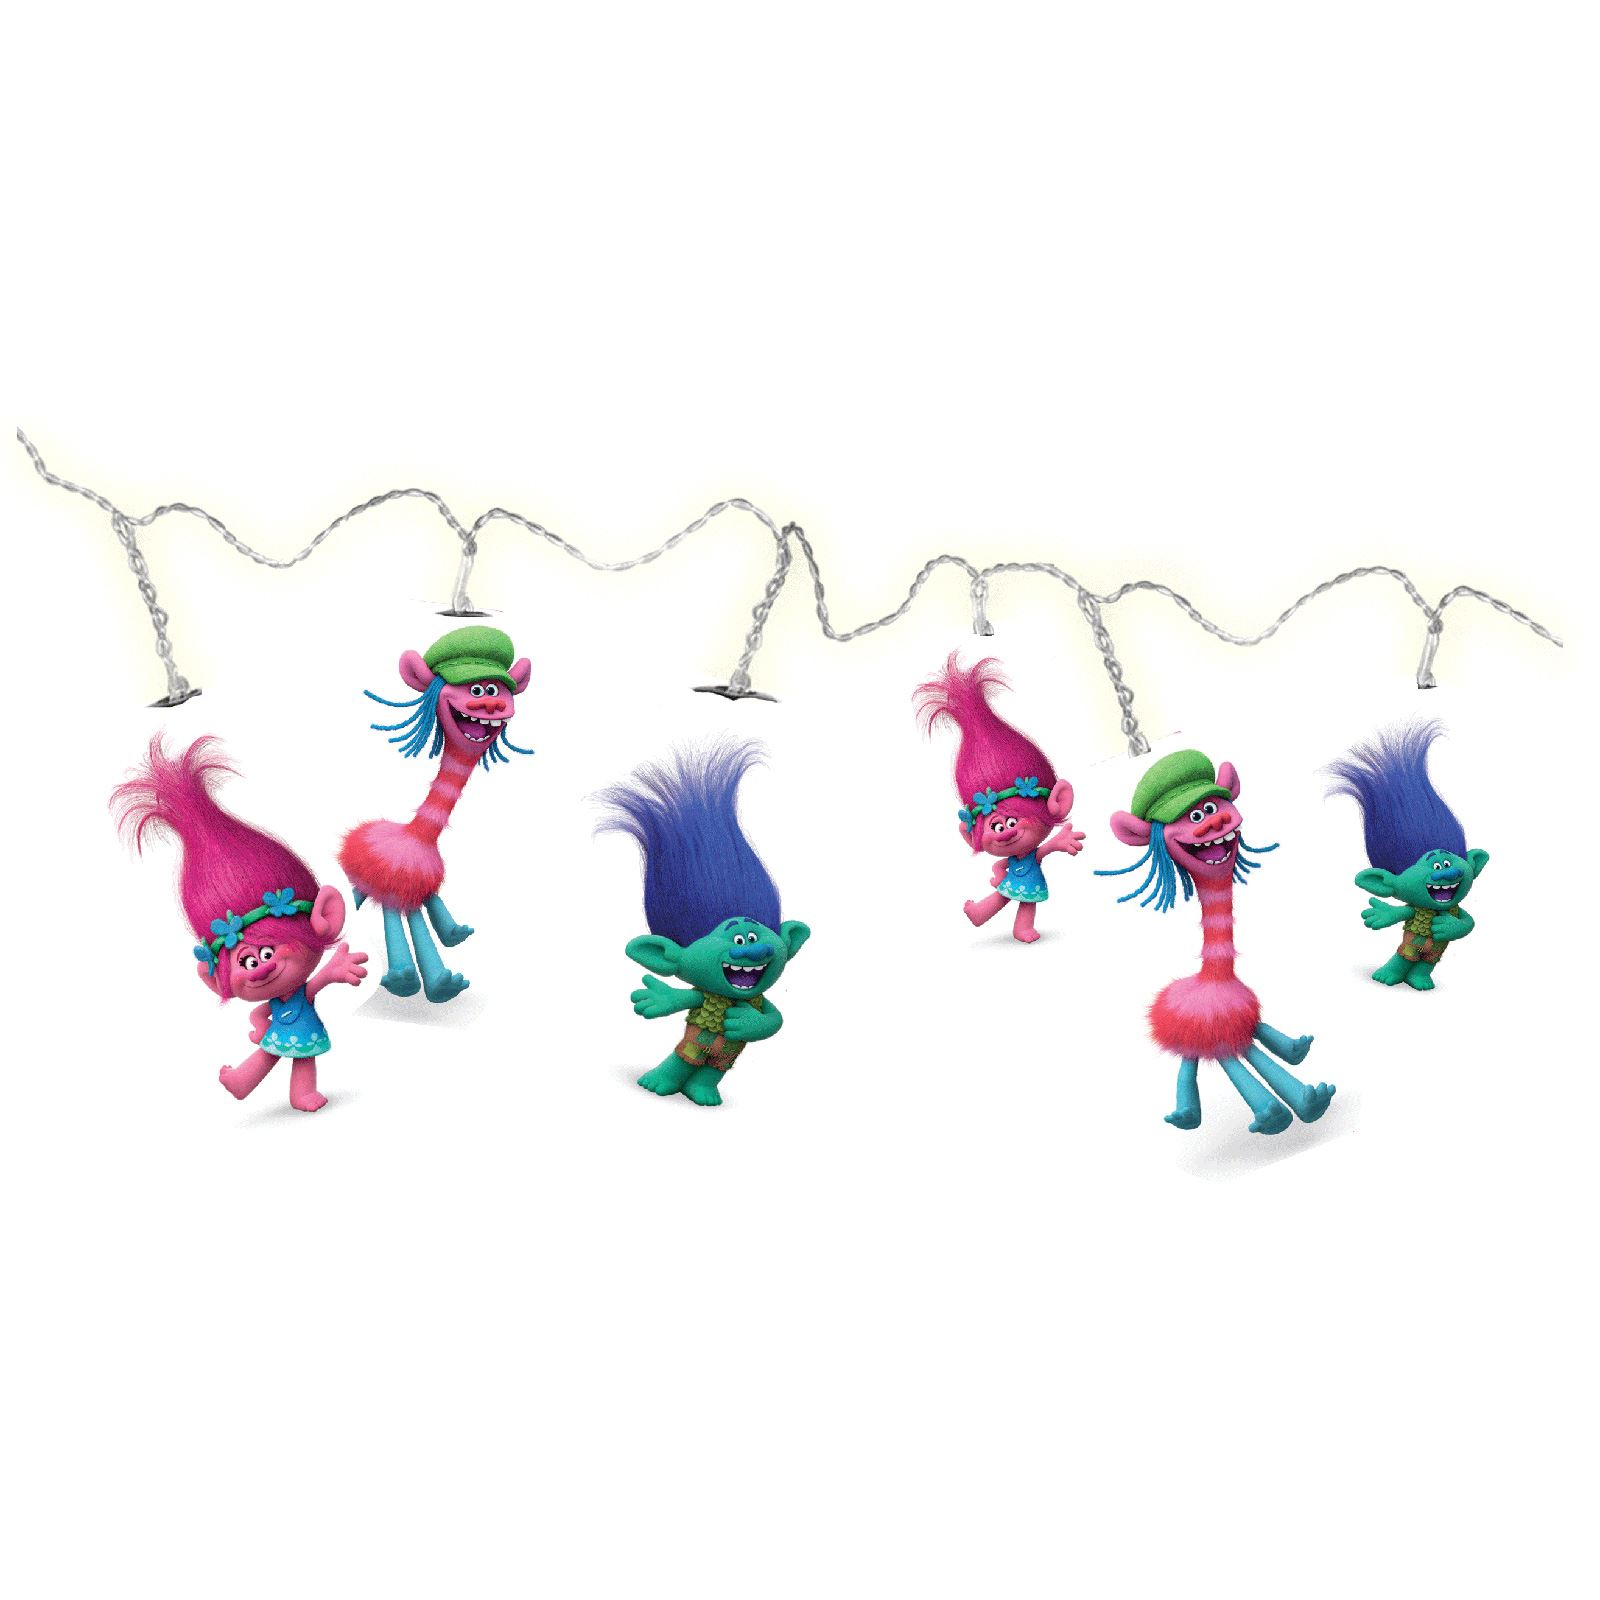 OFFICIAL TROLLS LED 15 STRING LIGHTS 2.8m LONG CABLE POPPY BRANCH COOPER